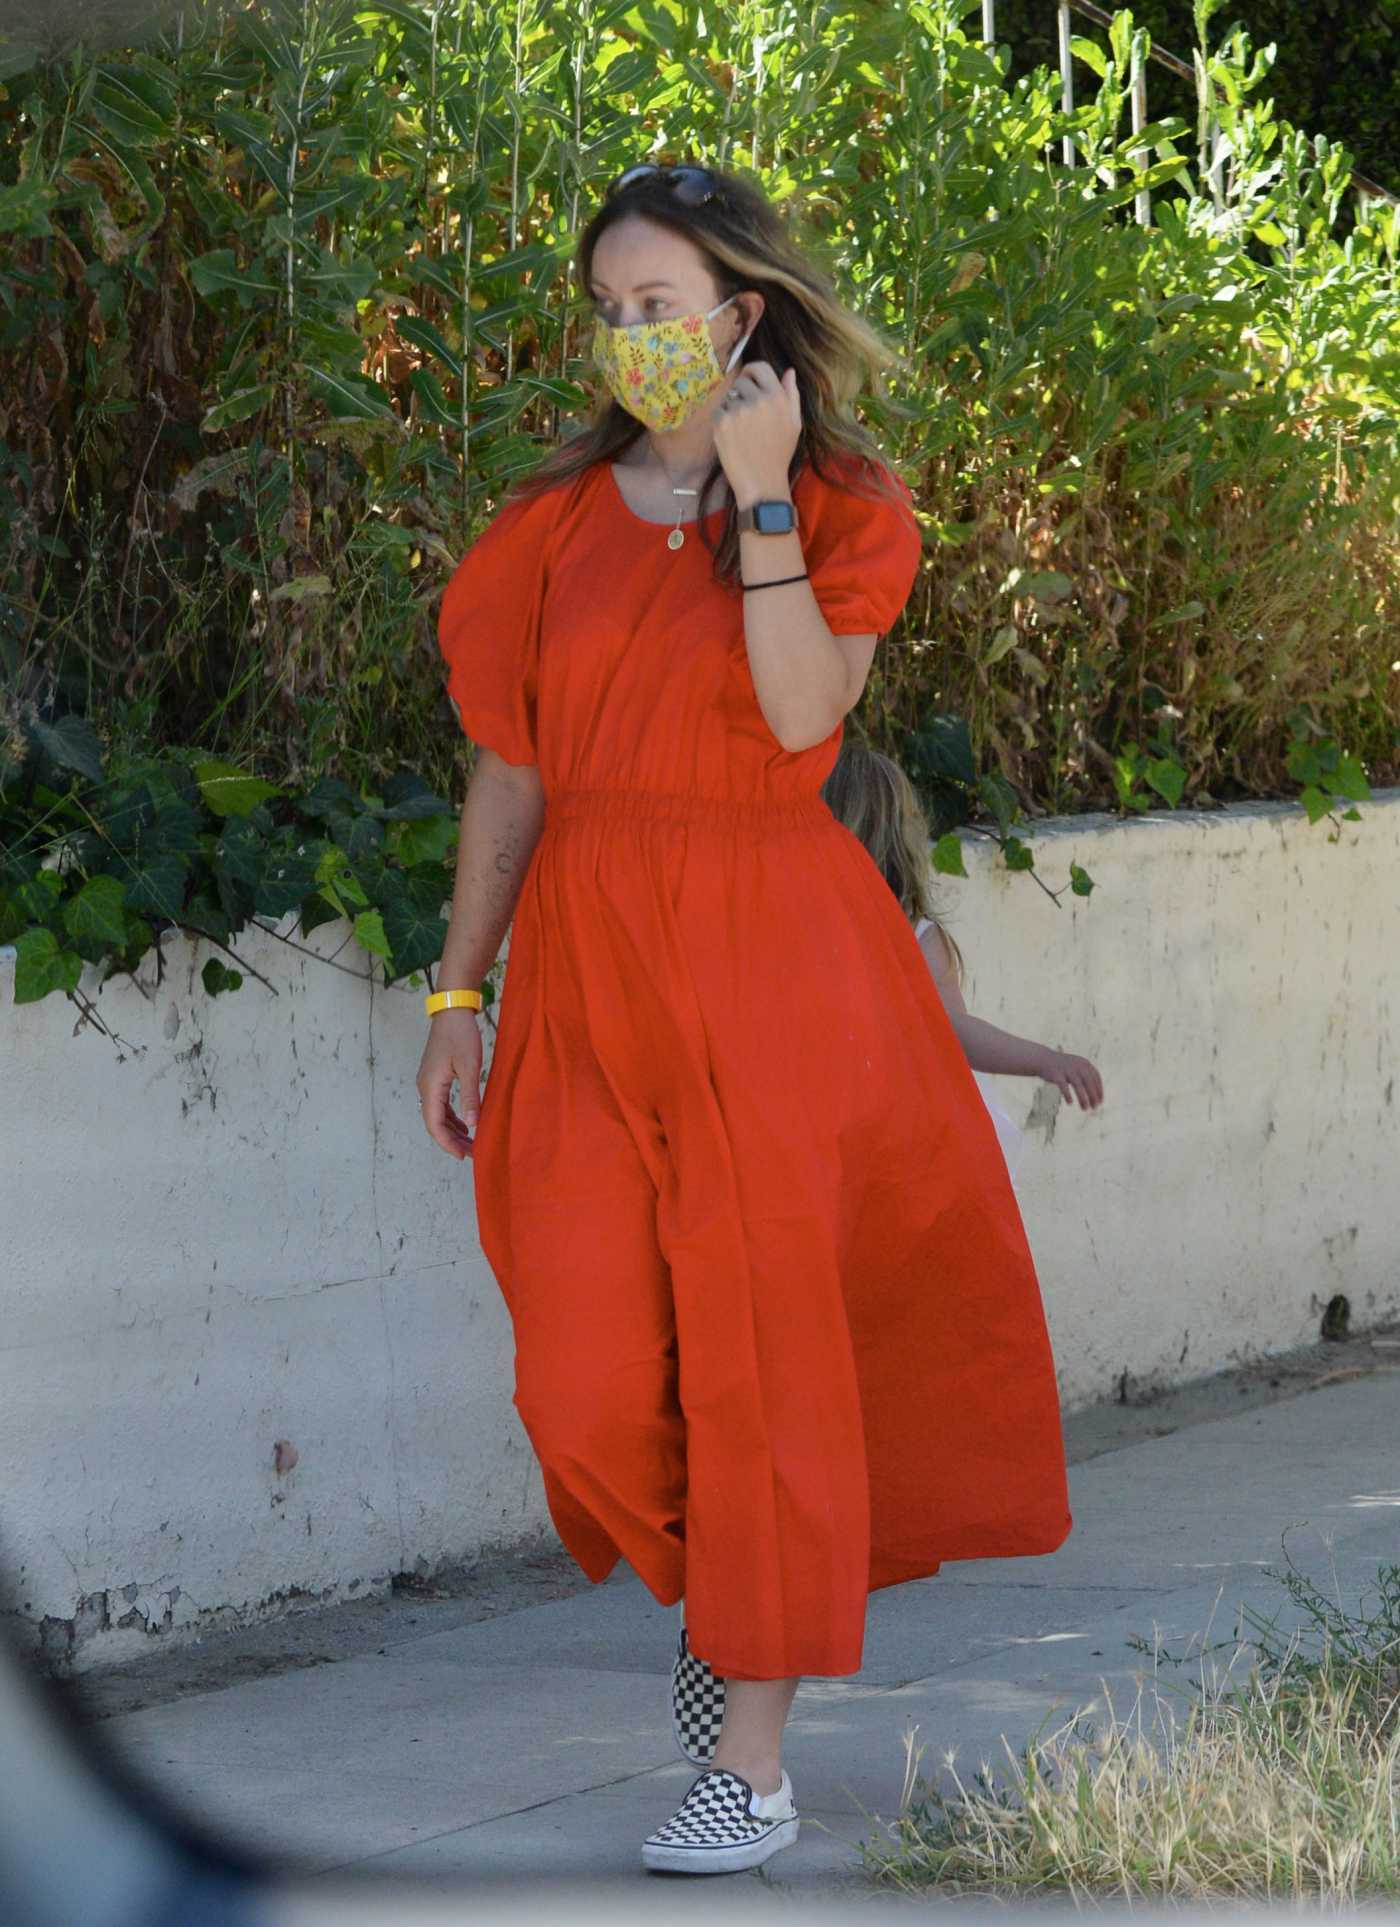 Olivia Wilde in a Red Dress Was Seen Out in Los Angeles 05/18/2020